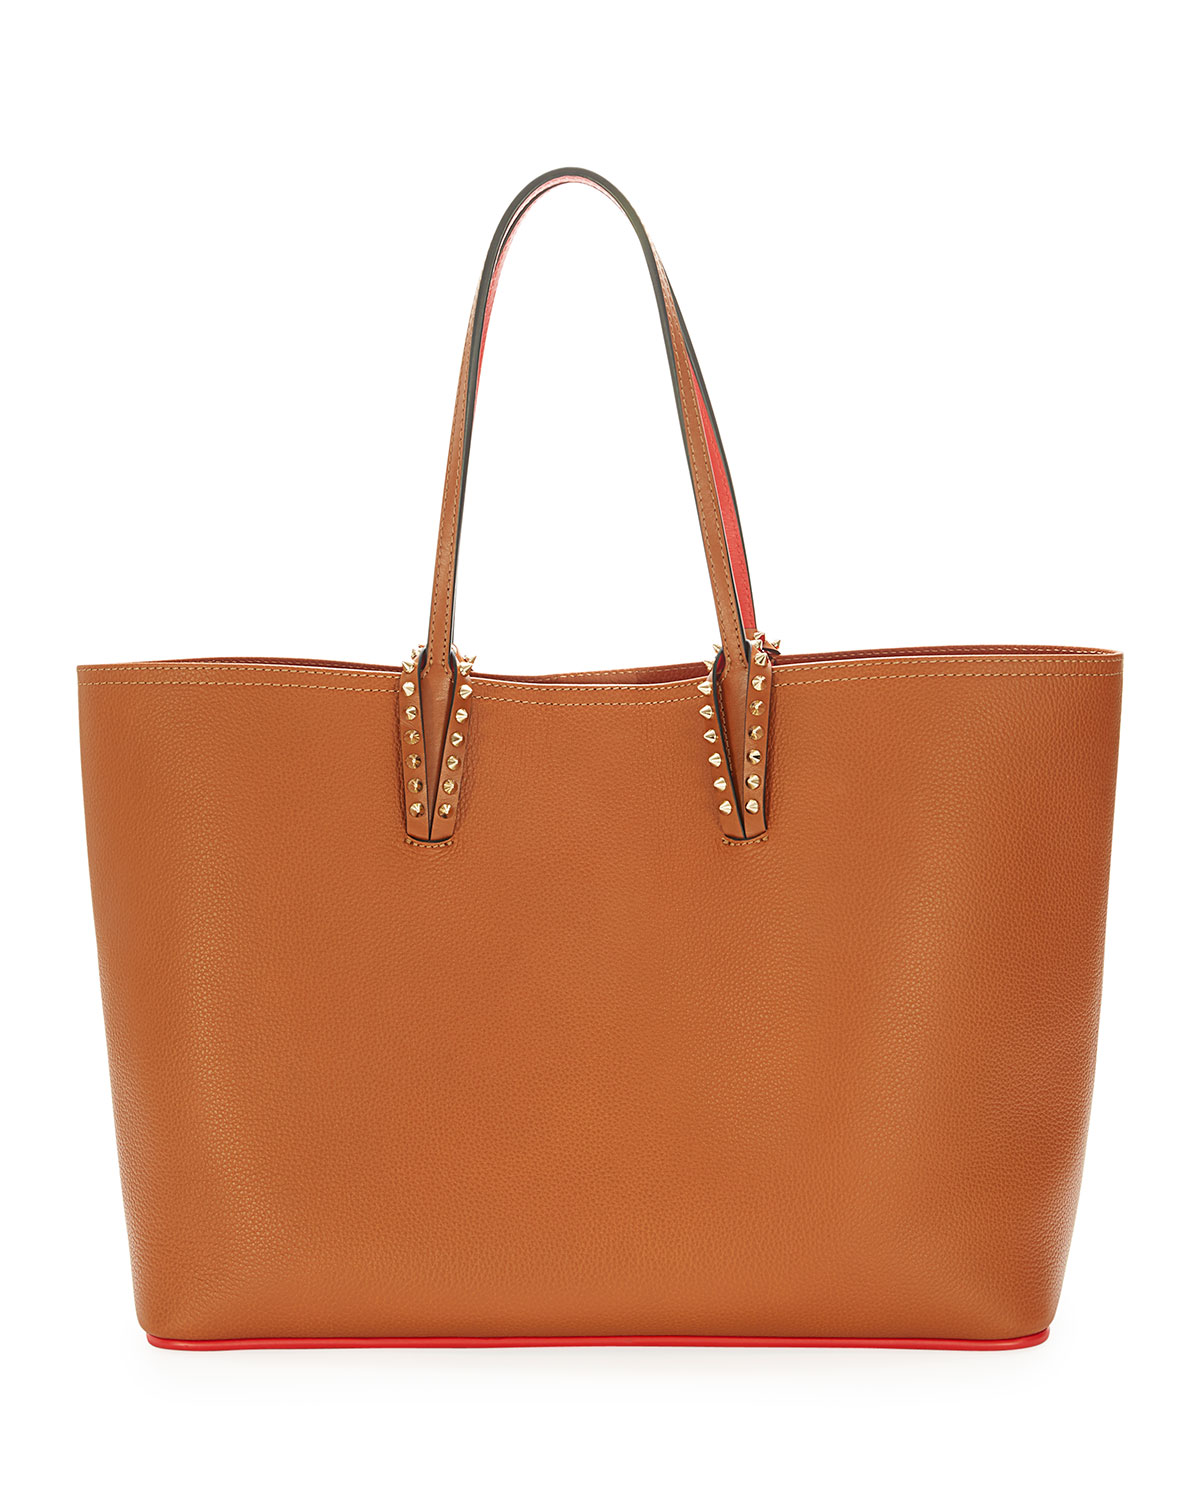 a8ec04da9712 Christian Louboutin Cabata East-West Leather Tote Bag